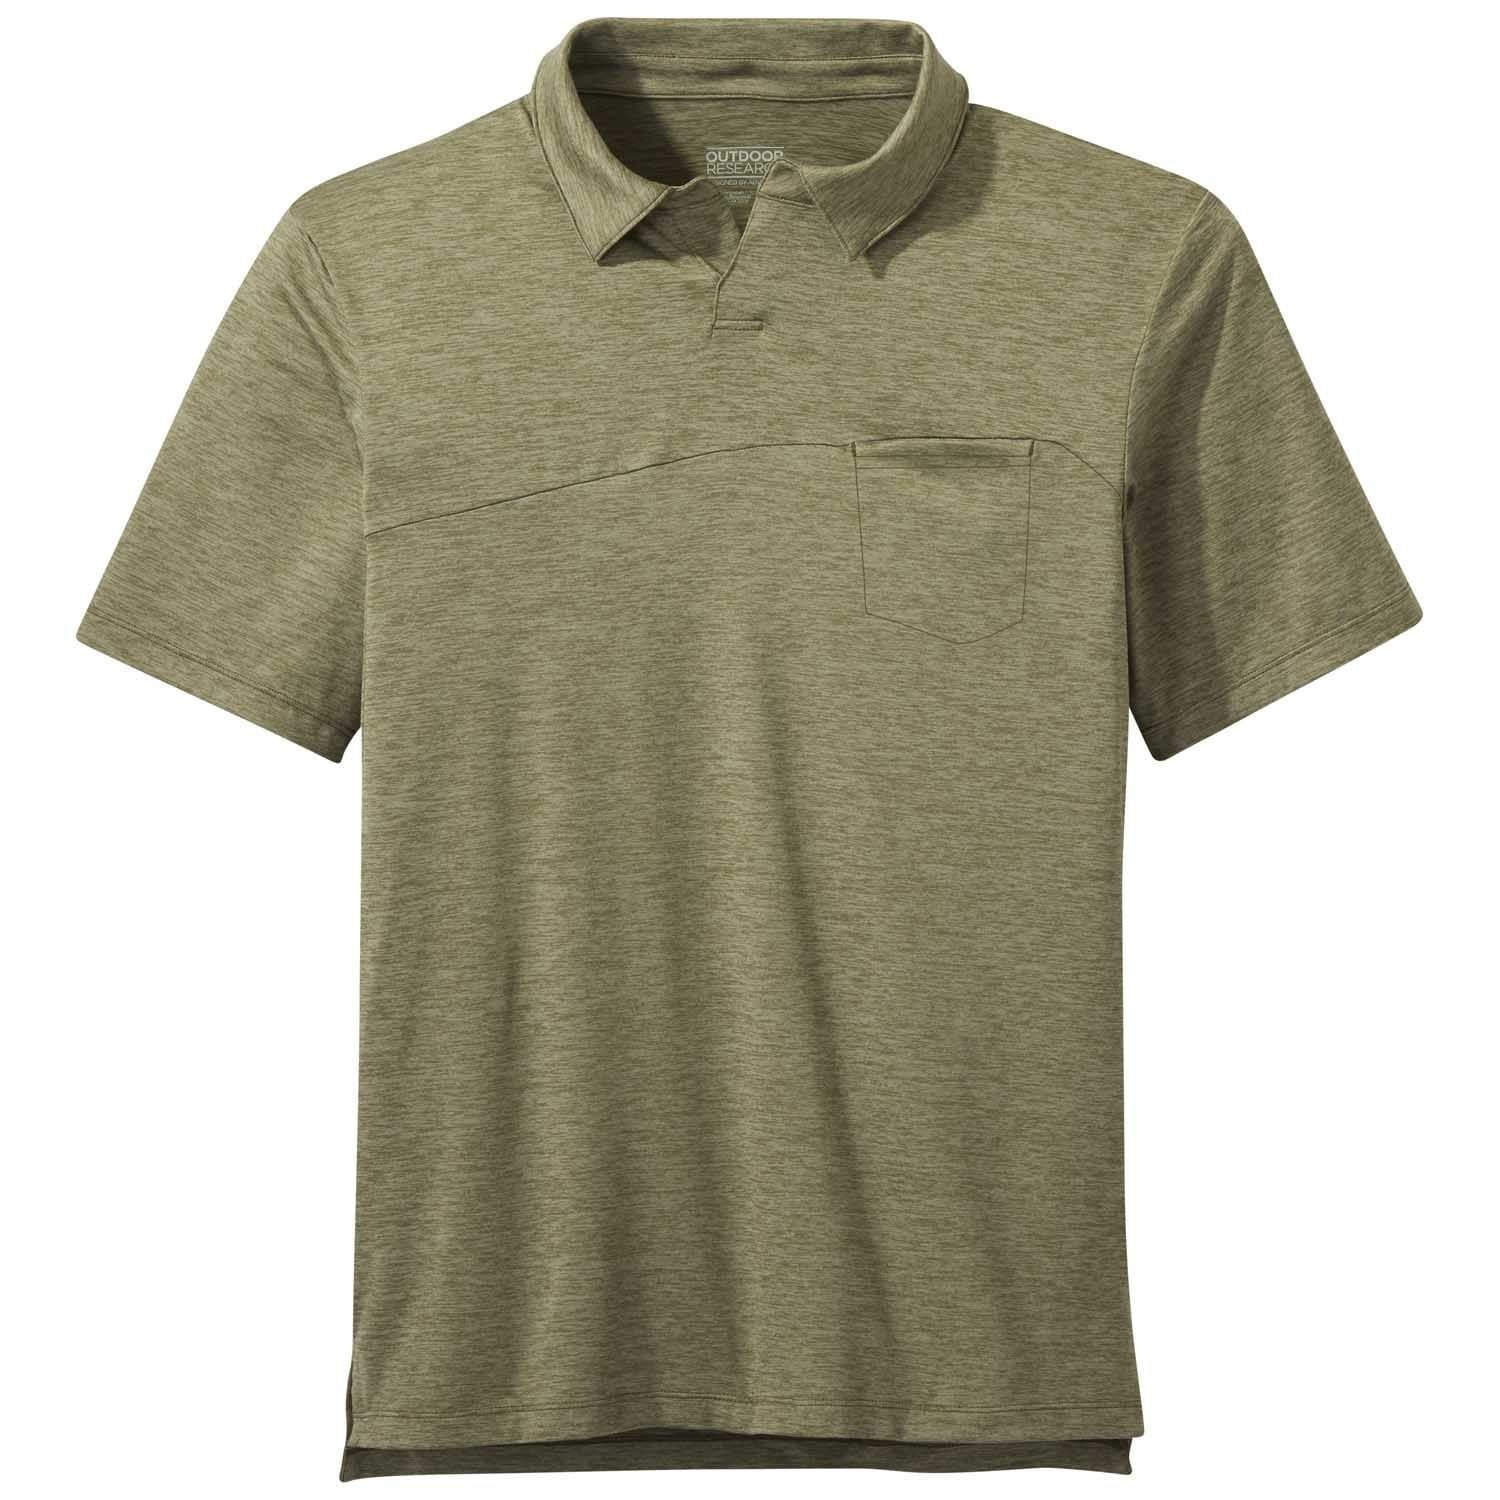 OR Chain Reaction Polo